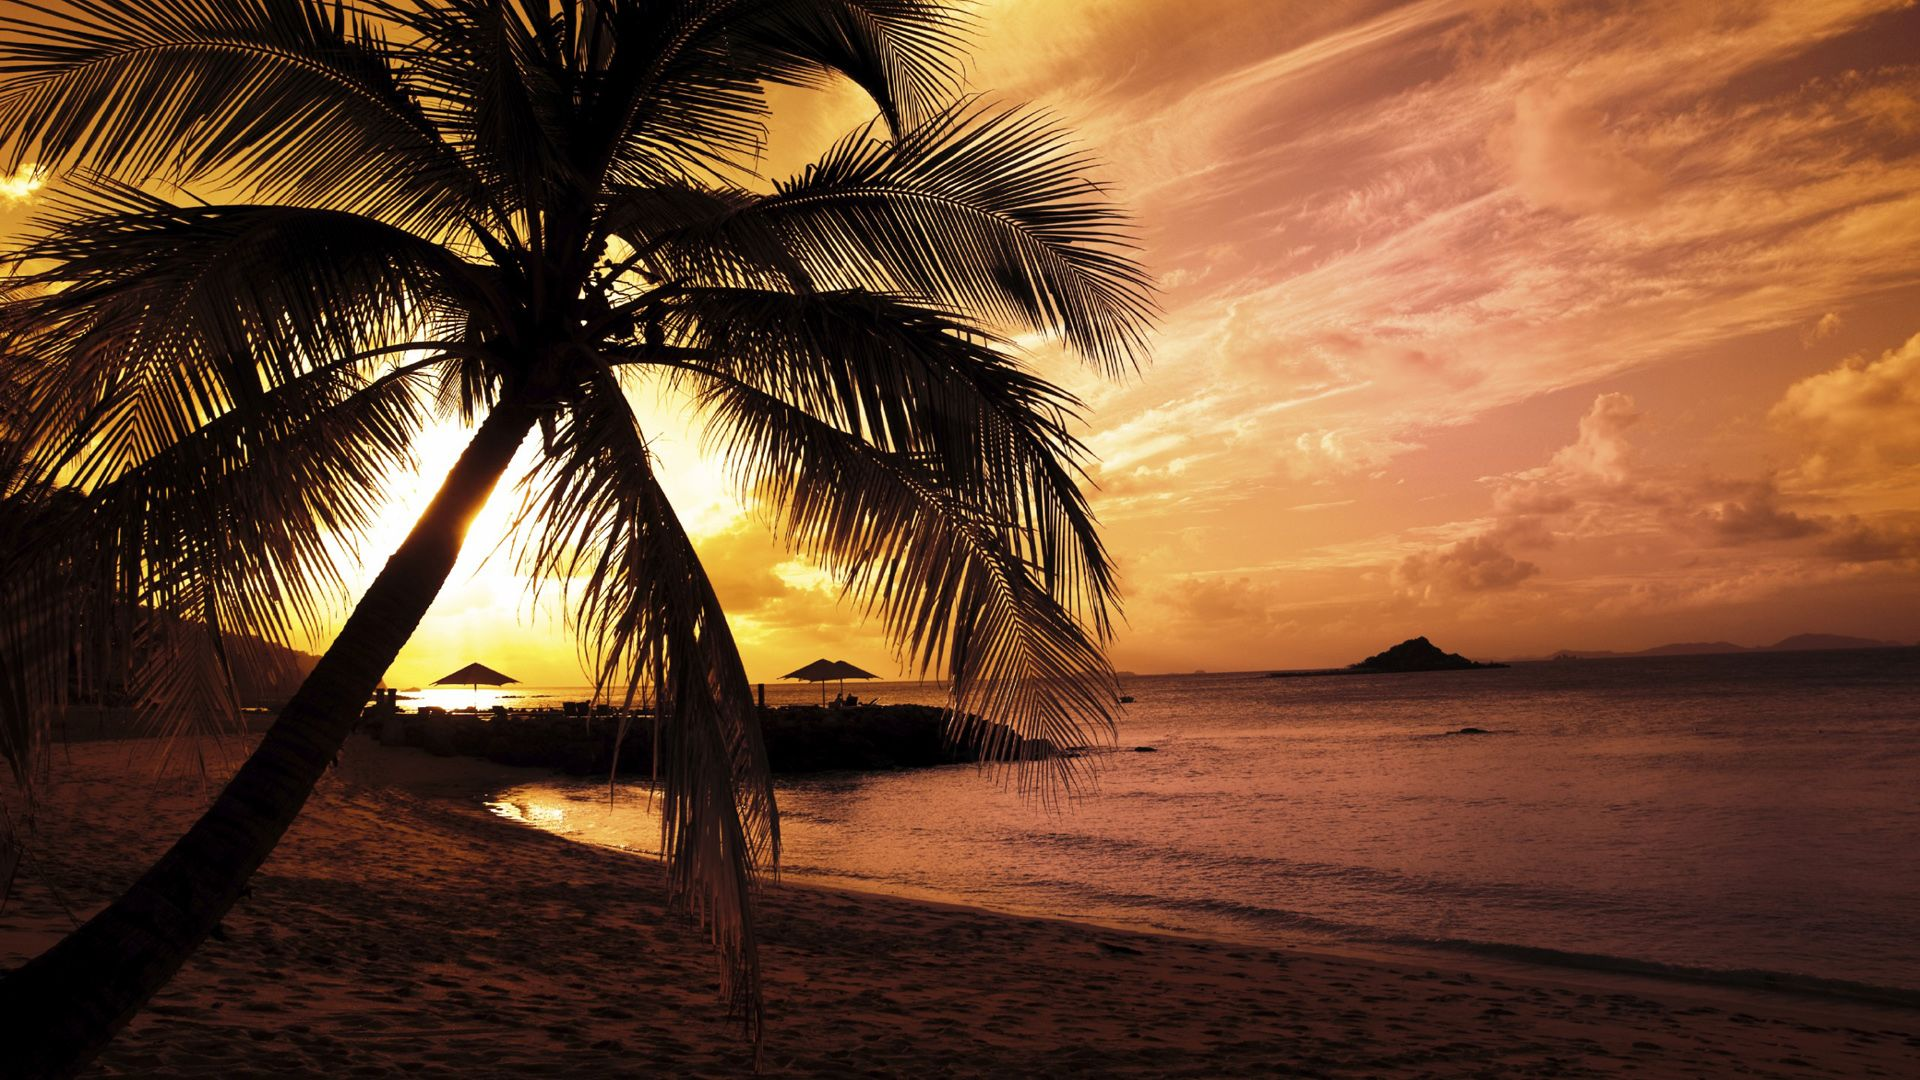 Tropical beach scenery at night Wallpapers